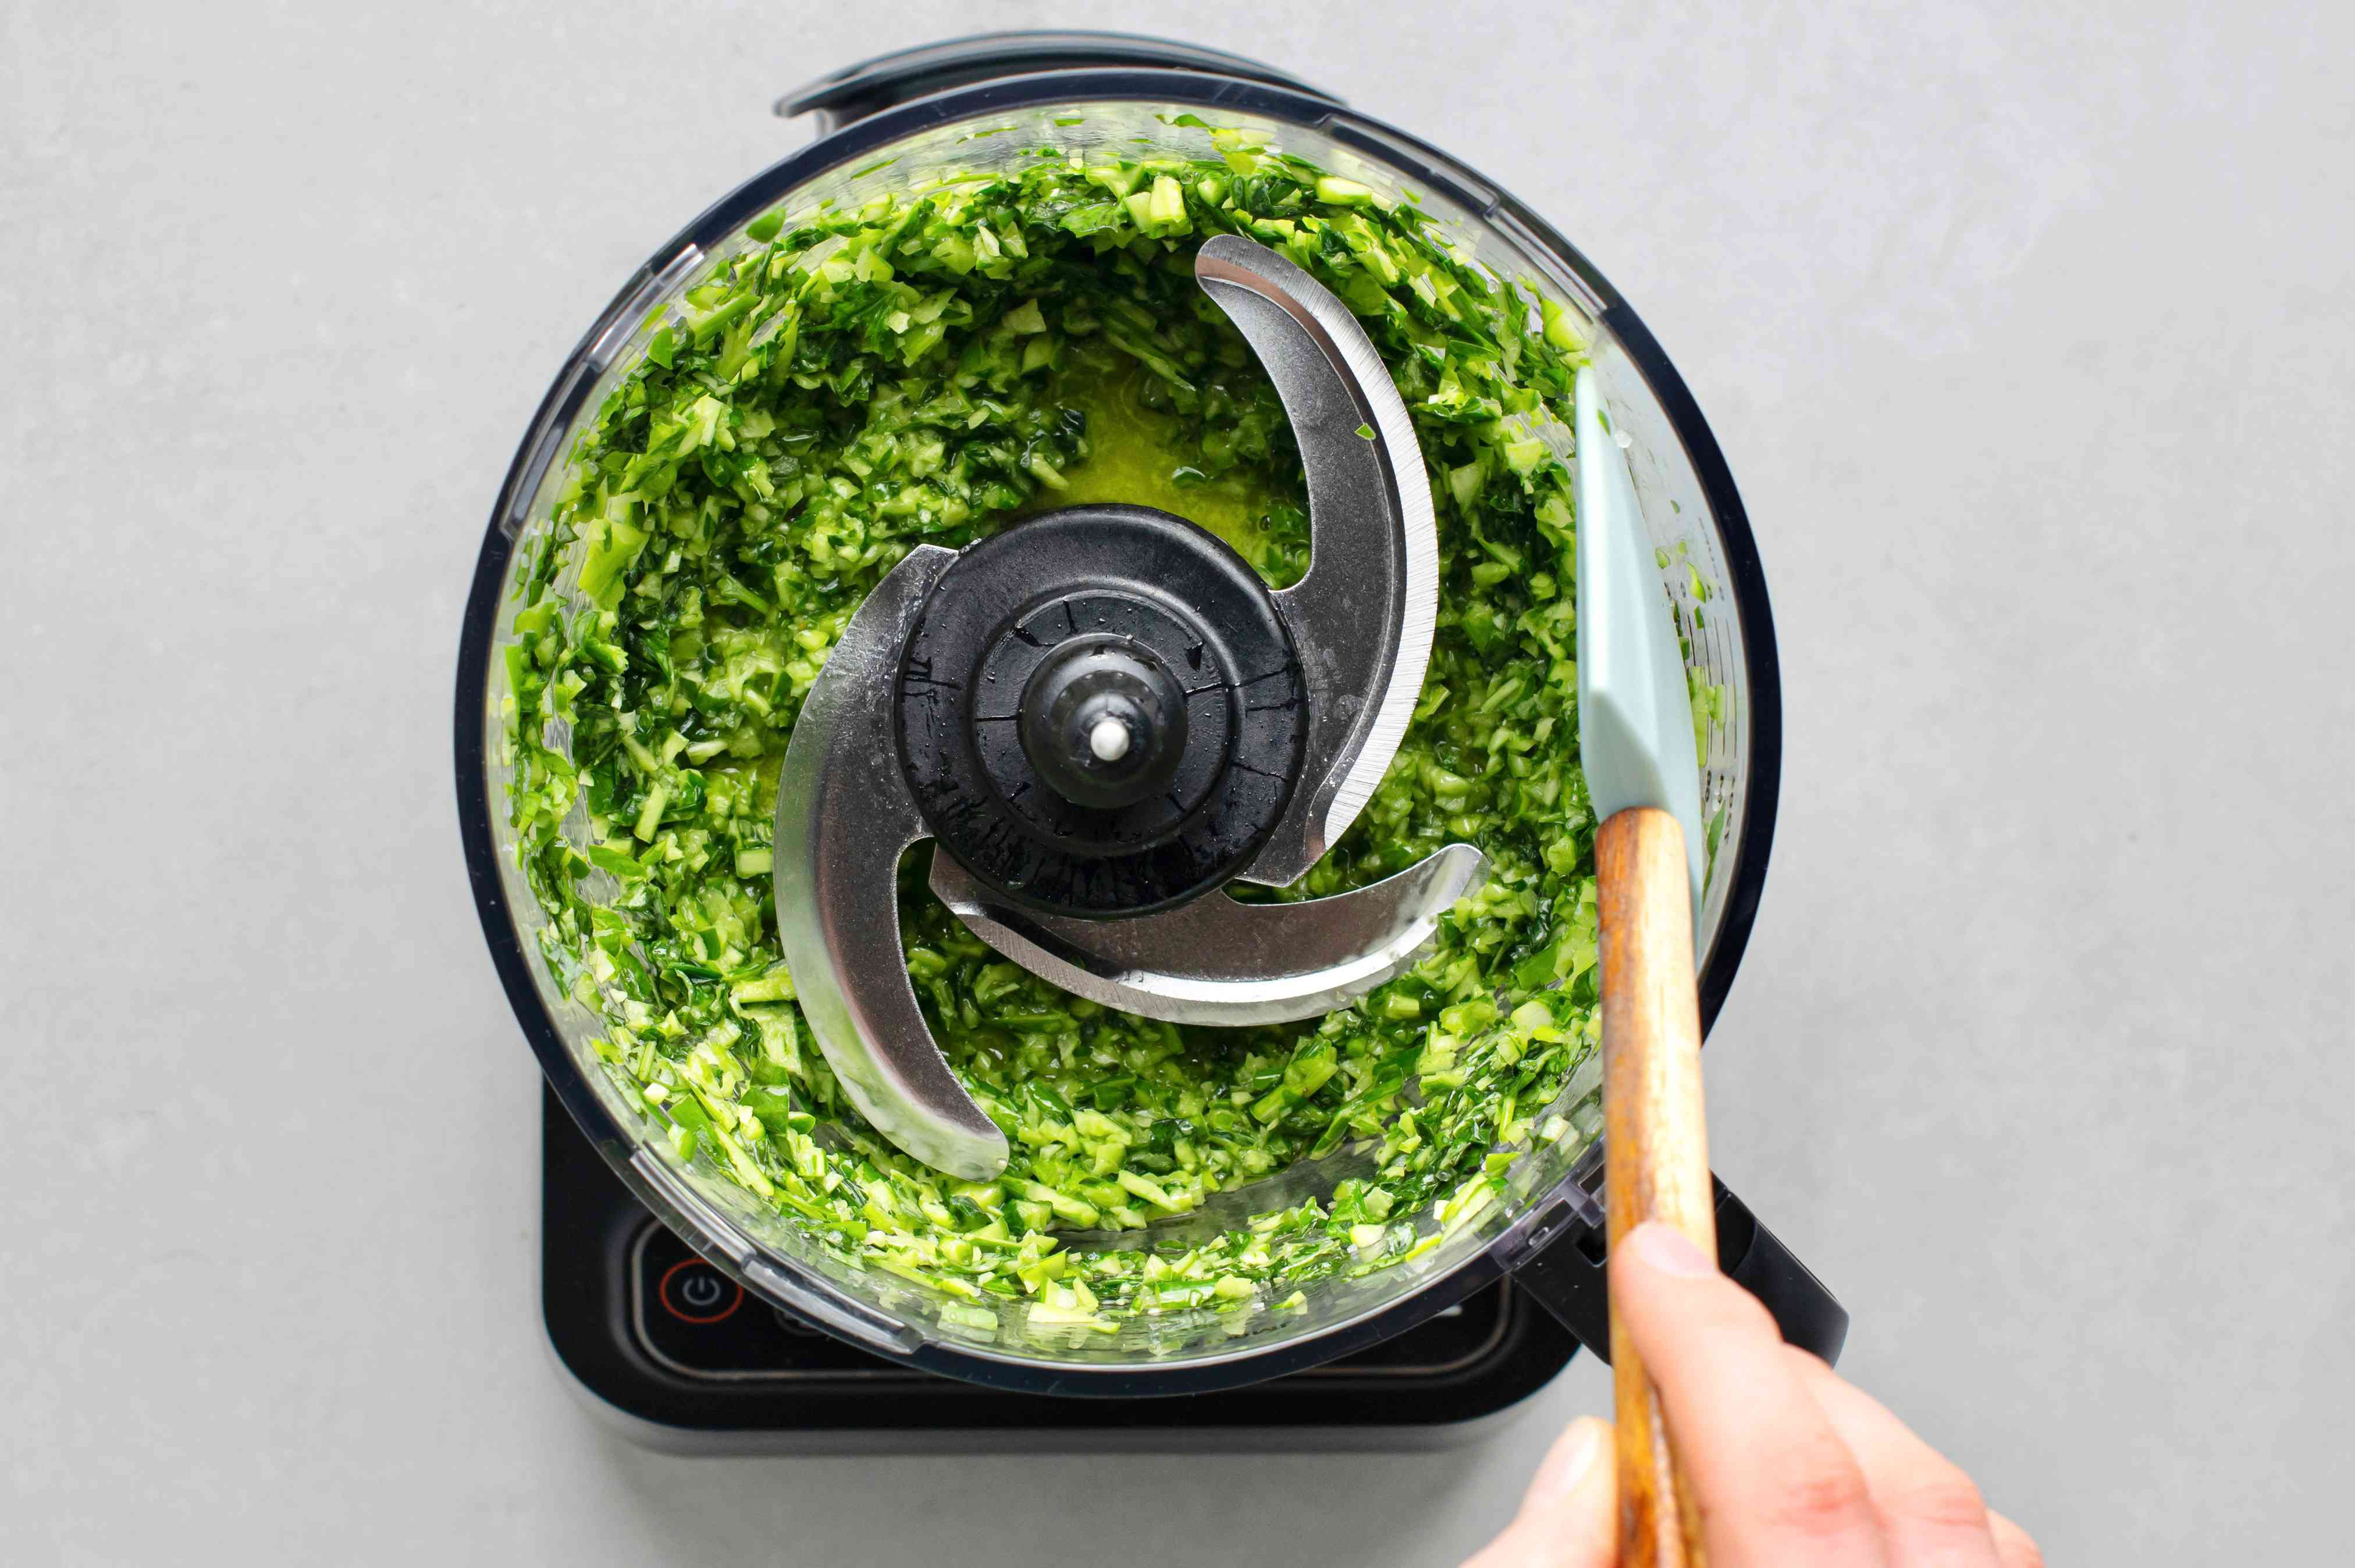 Scrape down the sides of the bowl with a rubber spatula